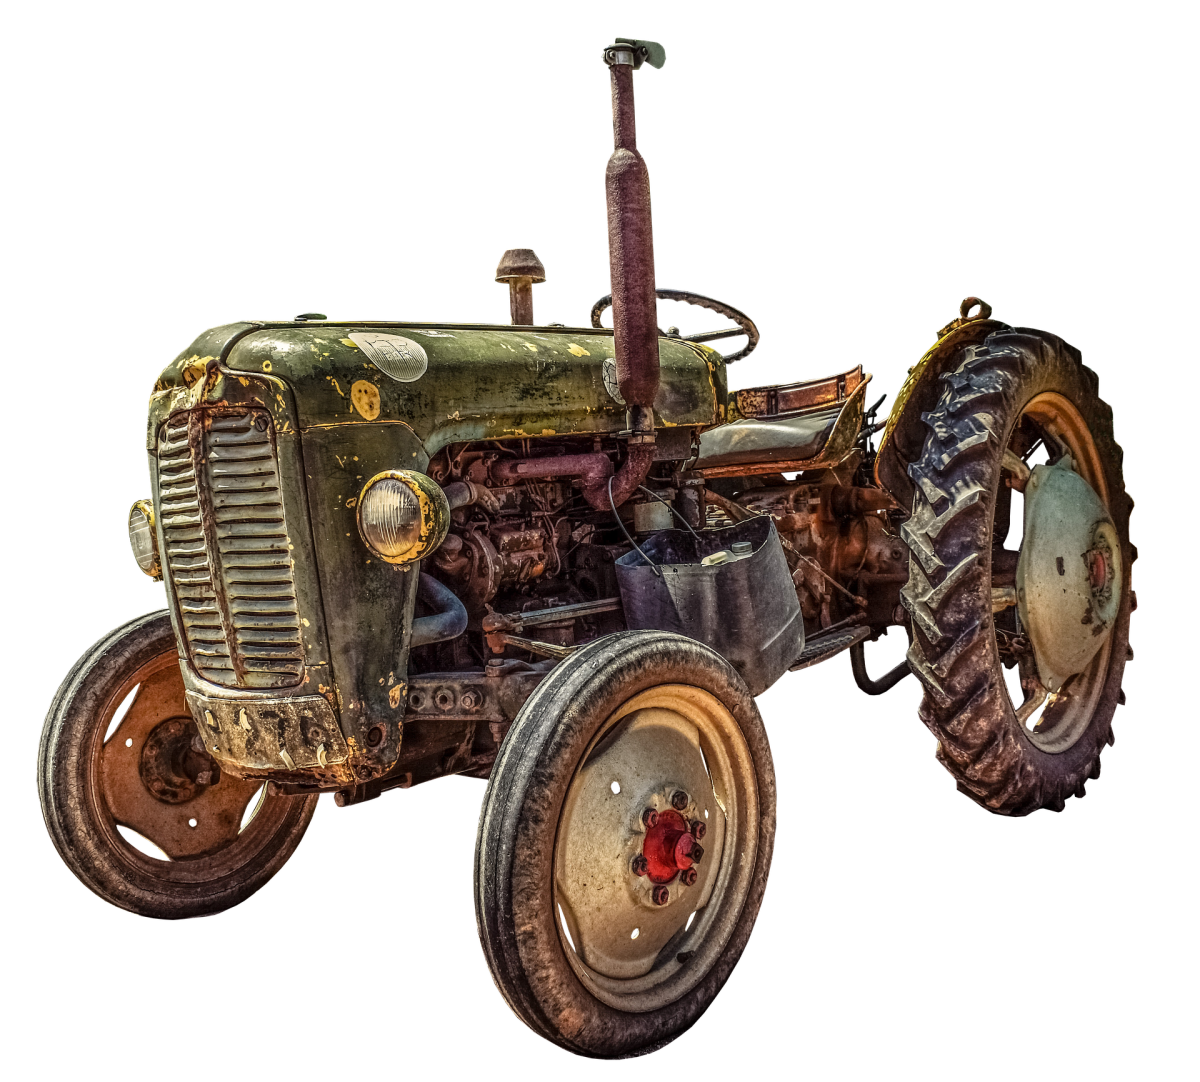 The Tractor: Billybuc Photo Challenge/Prompt#3